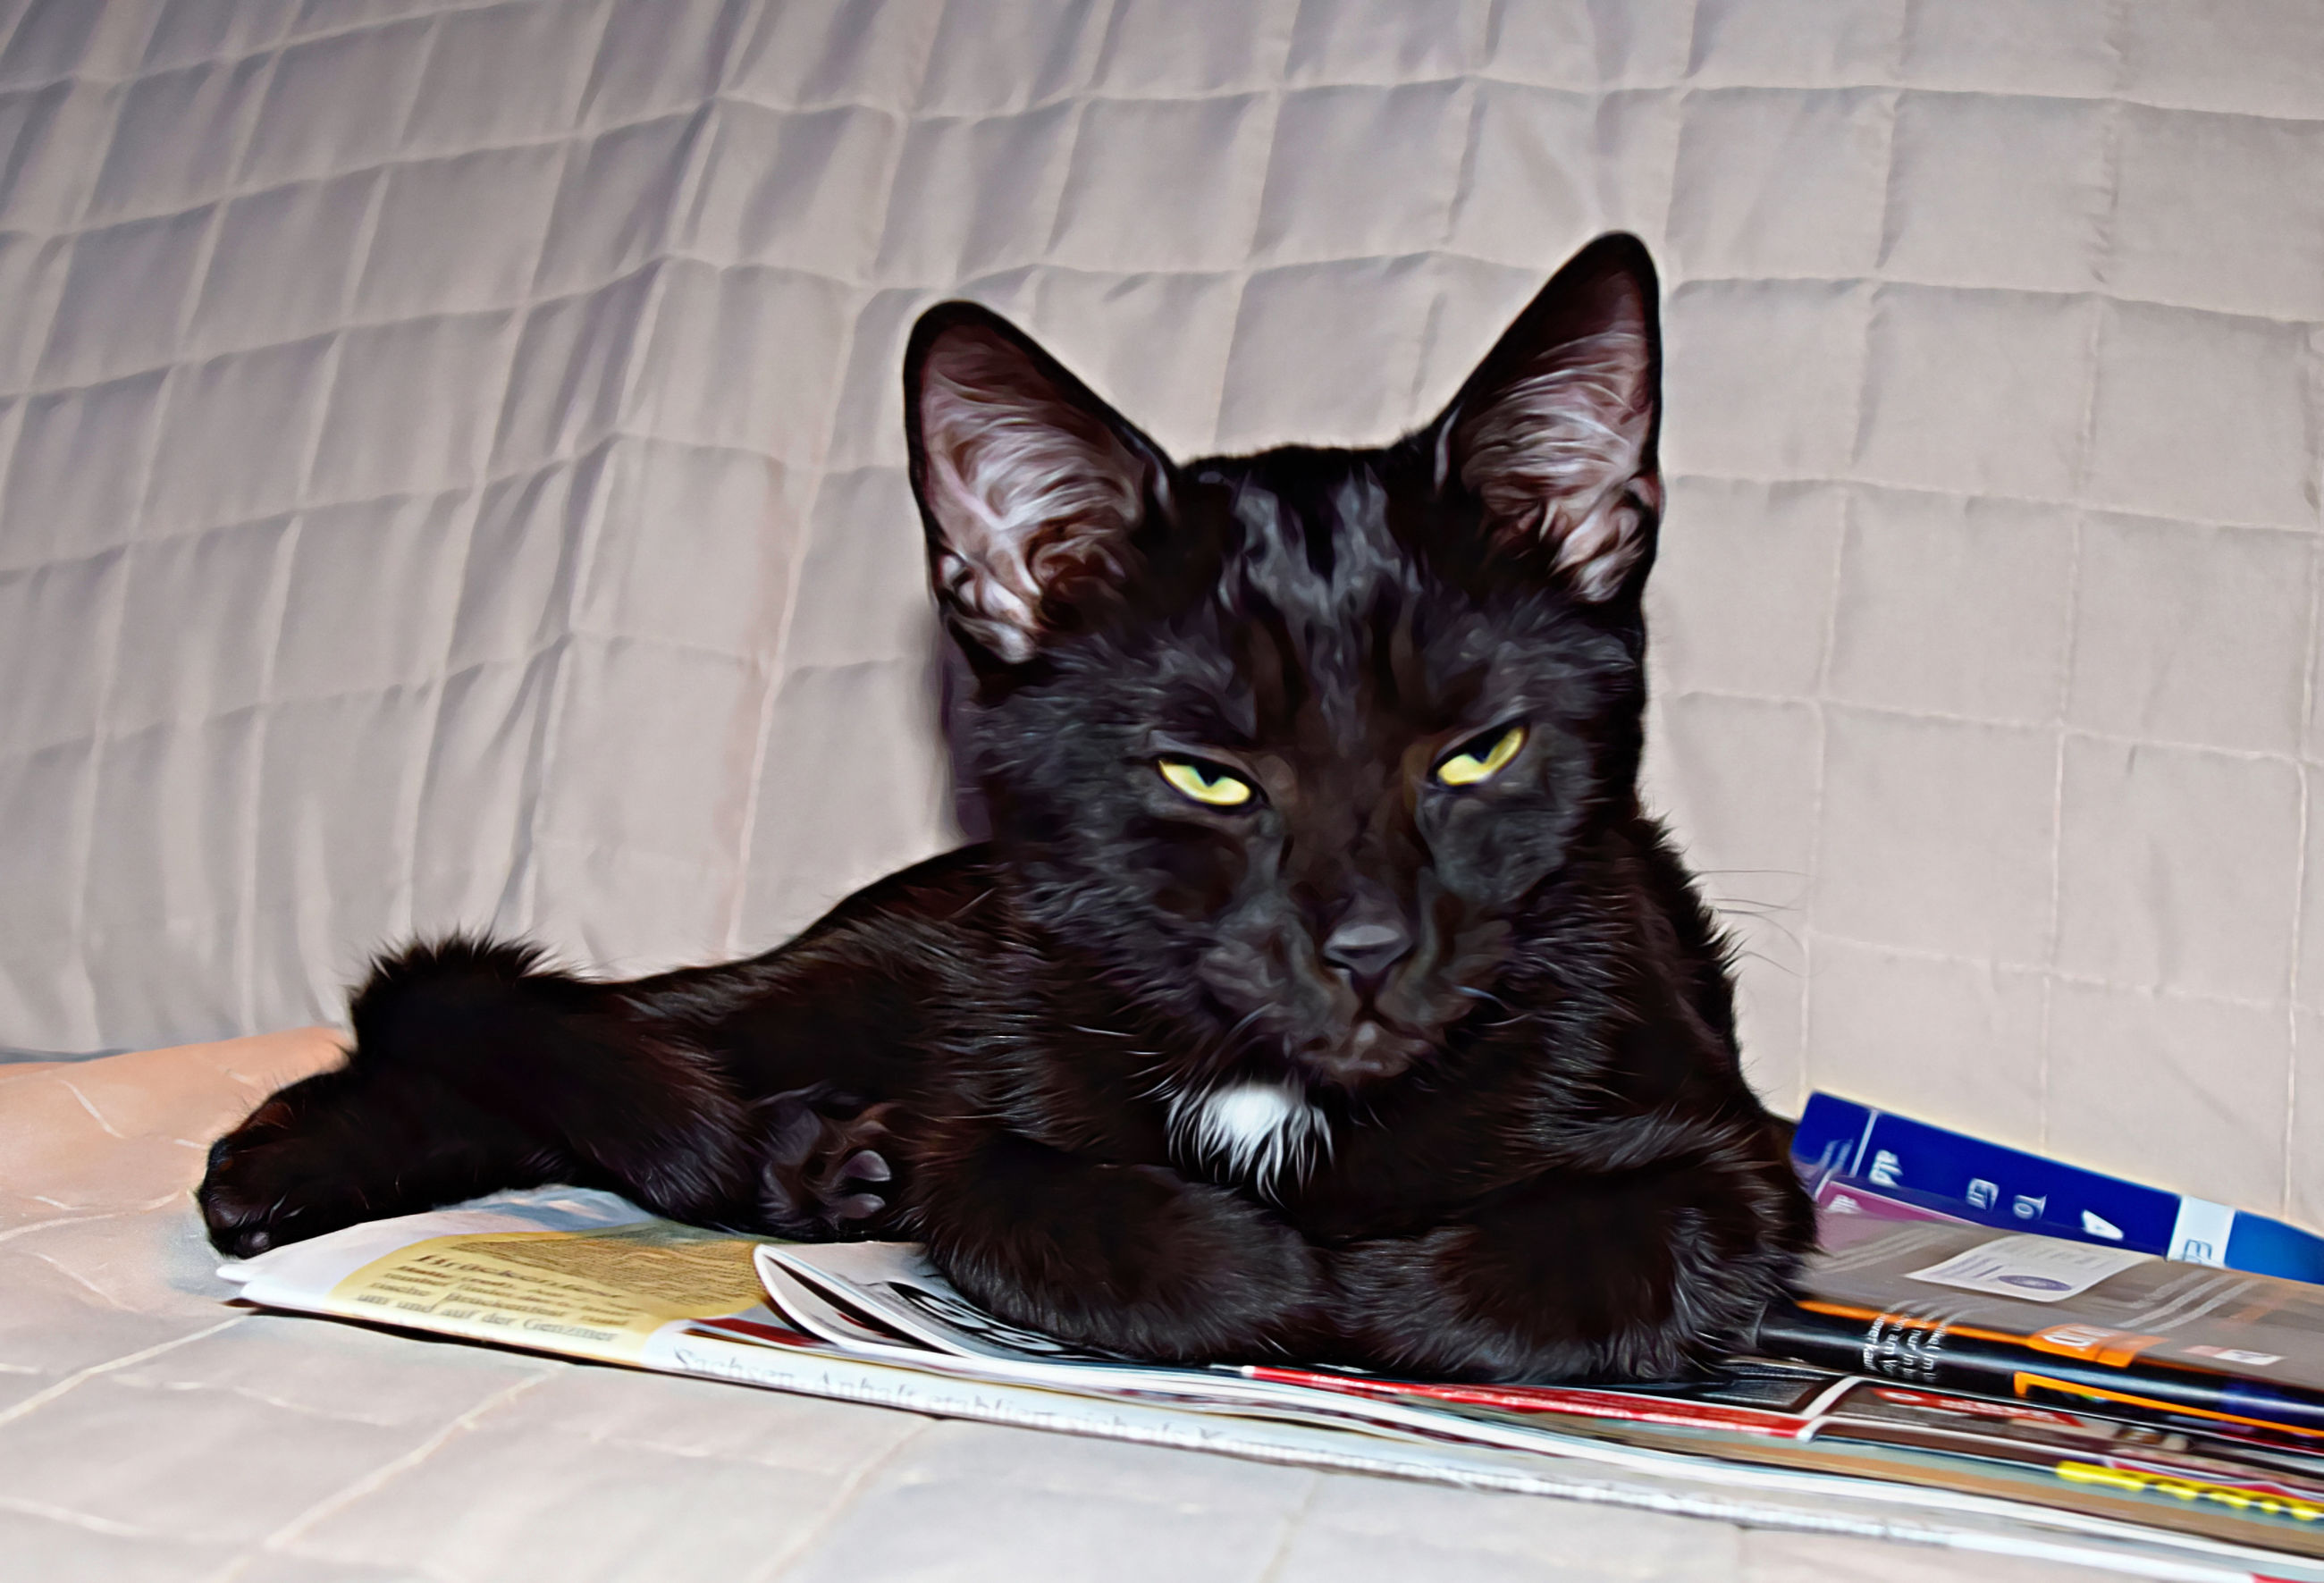 domestic animals, domestic, pets, mammal, cat, vertebrate, domestic cat, one animal, feline, relaxation, black color, indoors, no people, portrait, looking at camera, close-up, whisker